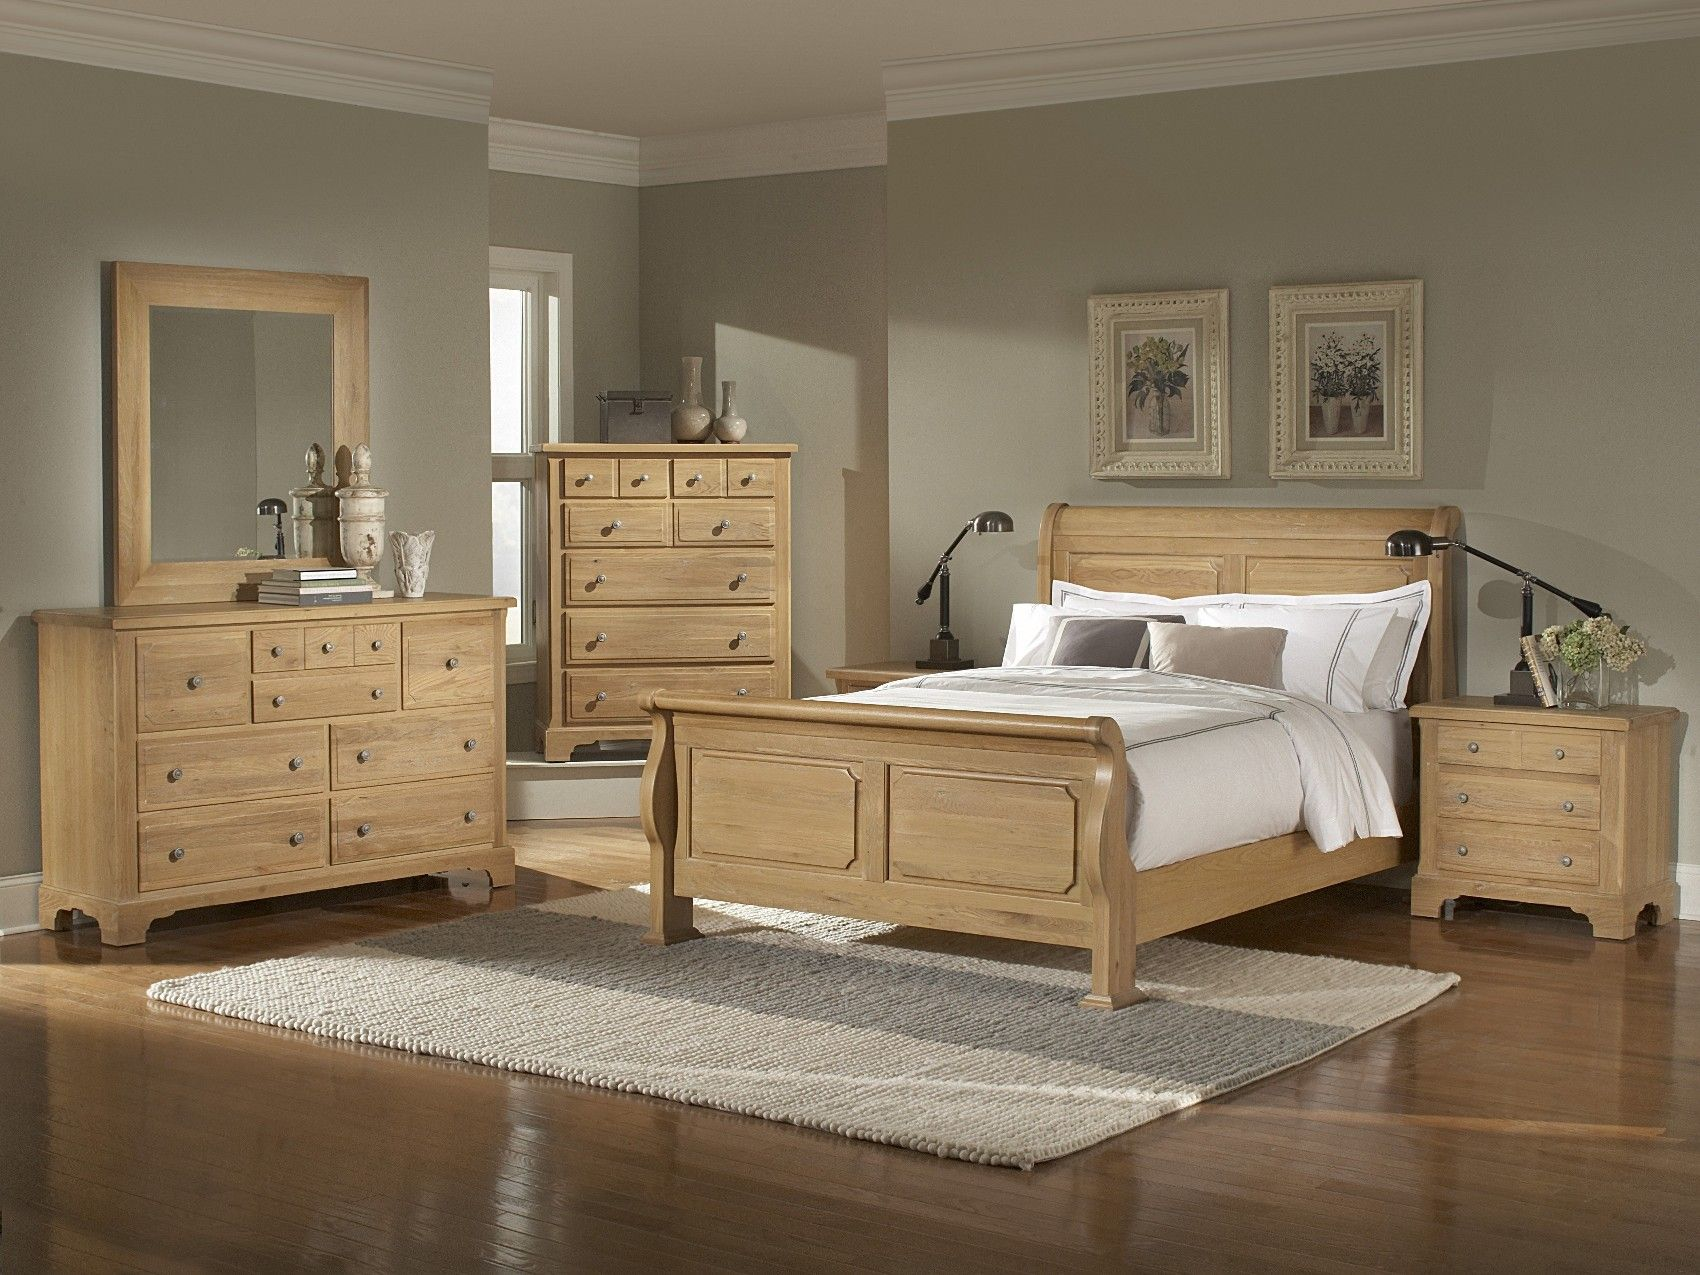 Modern Sleigh Bedroom Sets Oak Bedroom Furniture Sets Washed Oak Queen Sleigh Bedroom